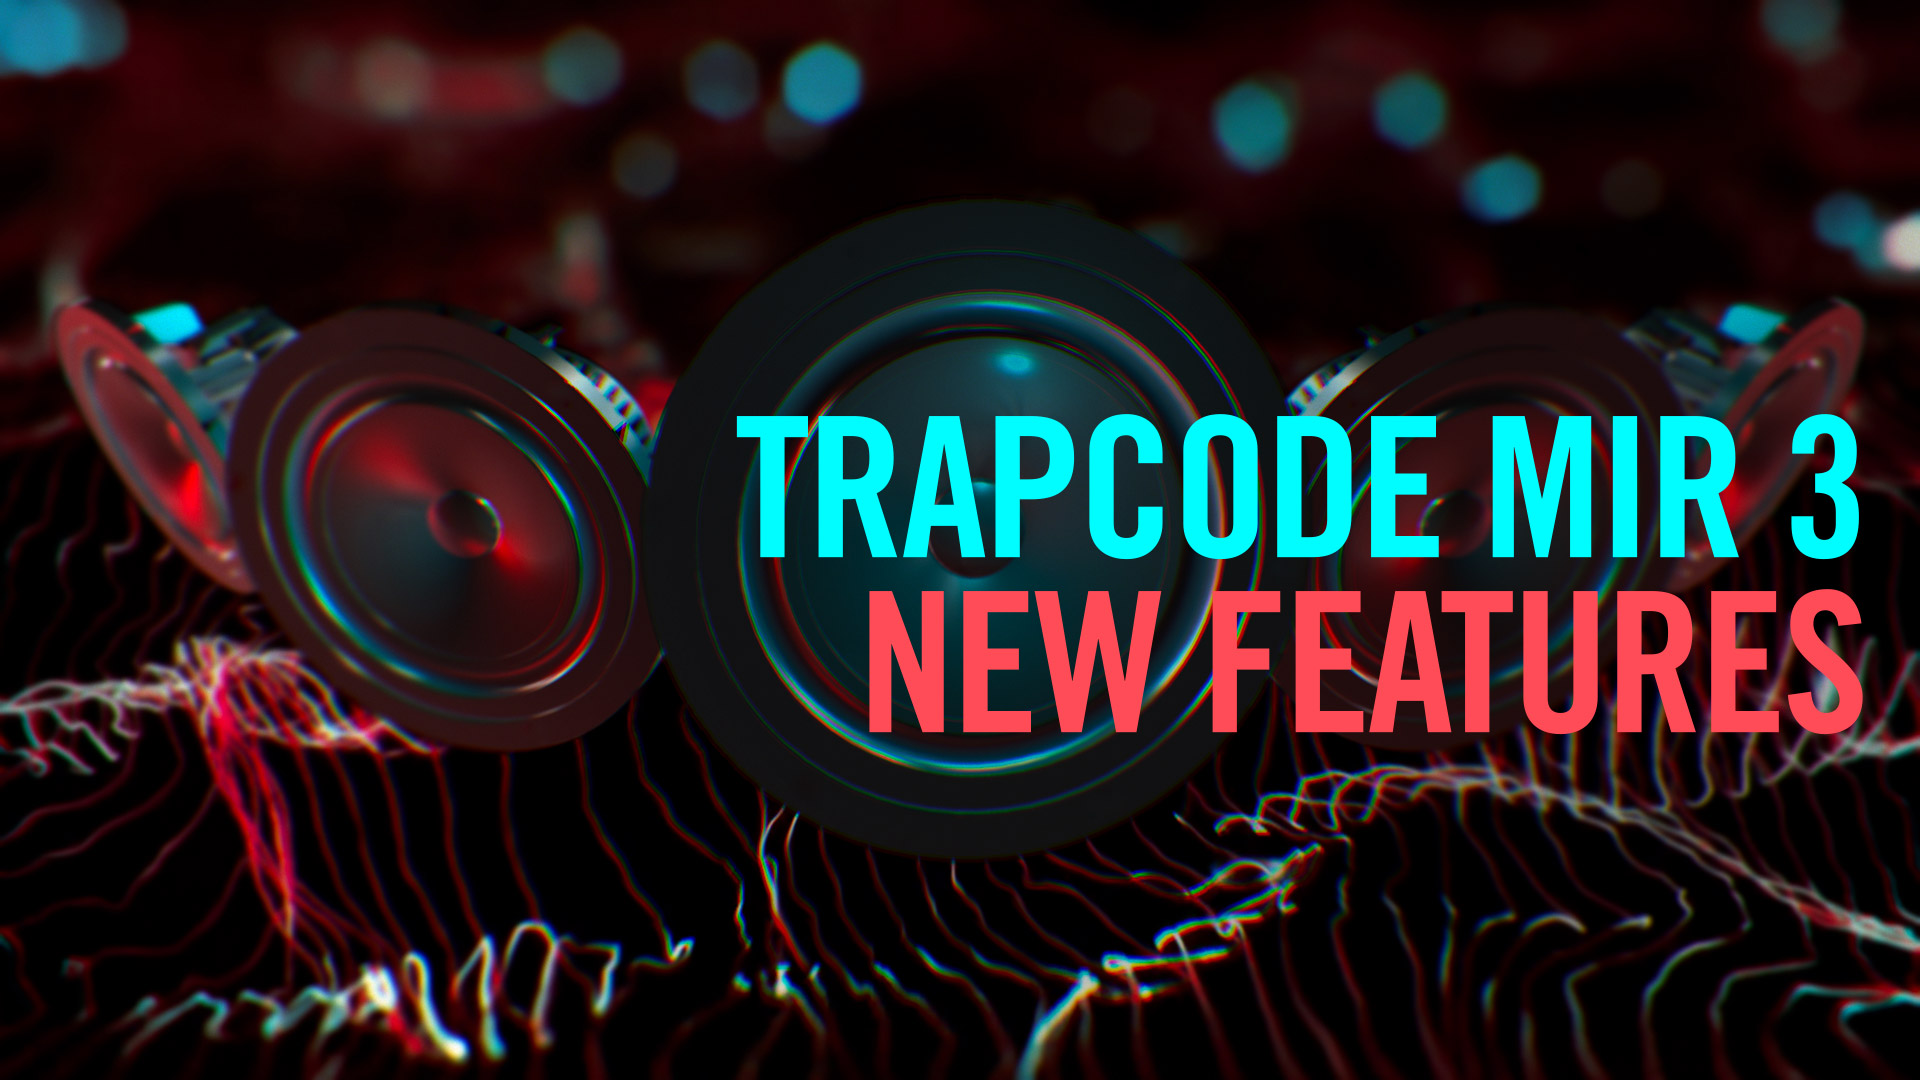 Trapcode Mir 3 - New Features